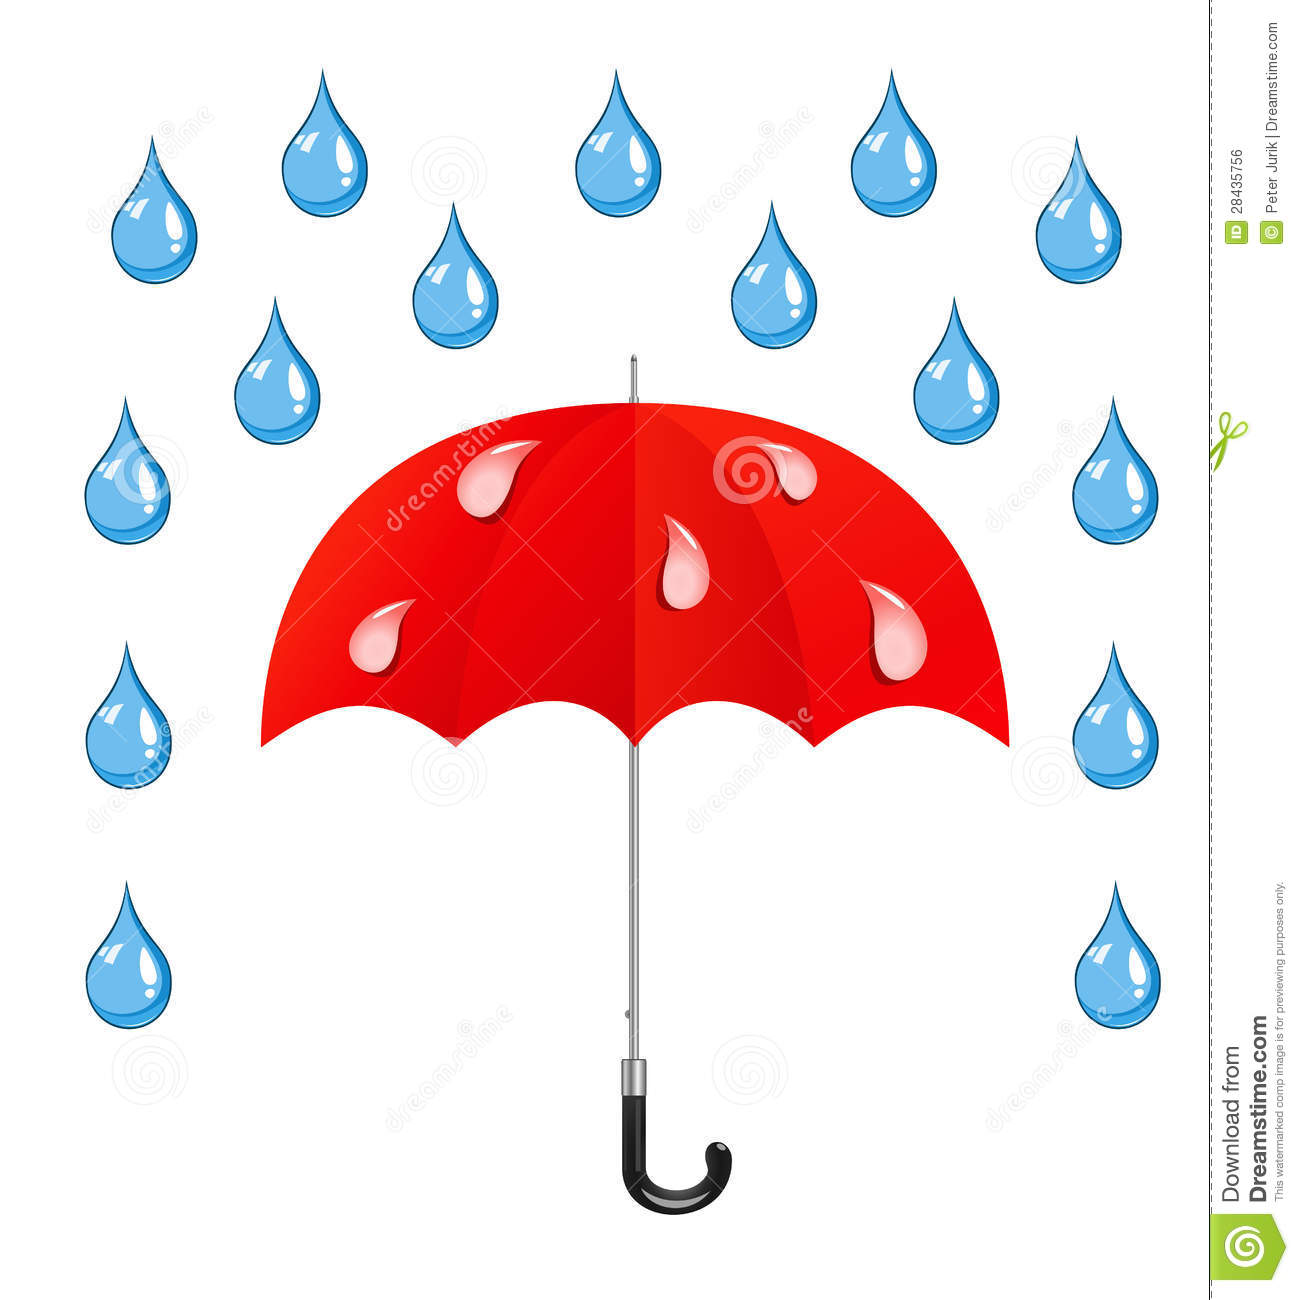 Rain Clipart Clipart Panda Free Clipart Images in Free Animated Rain Clipart